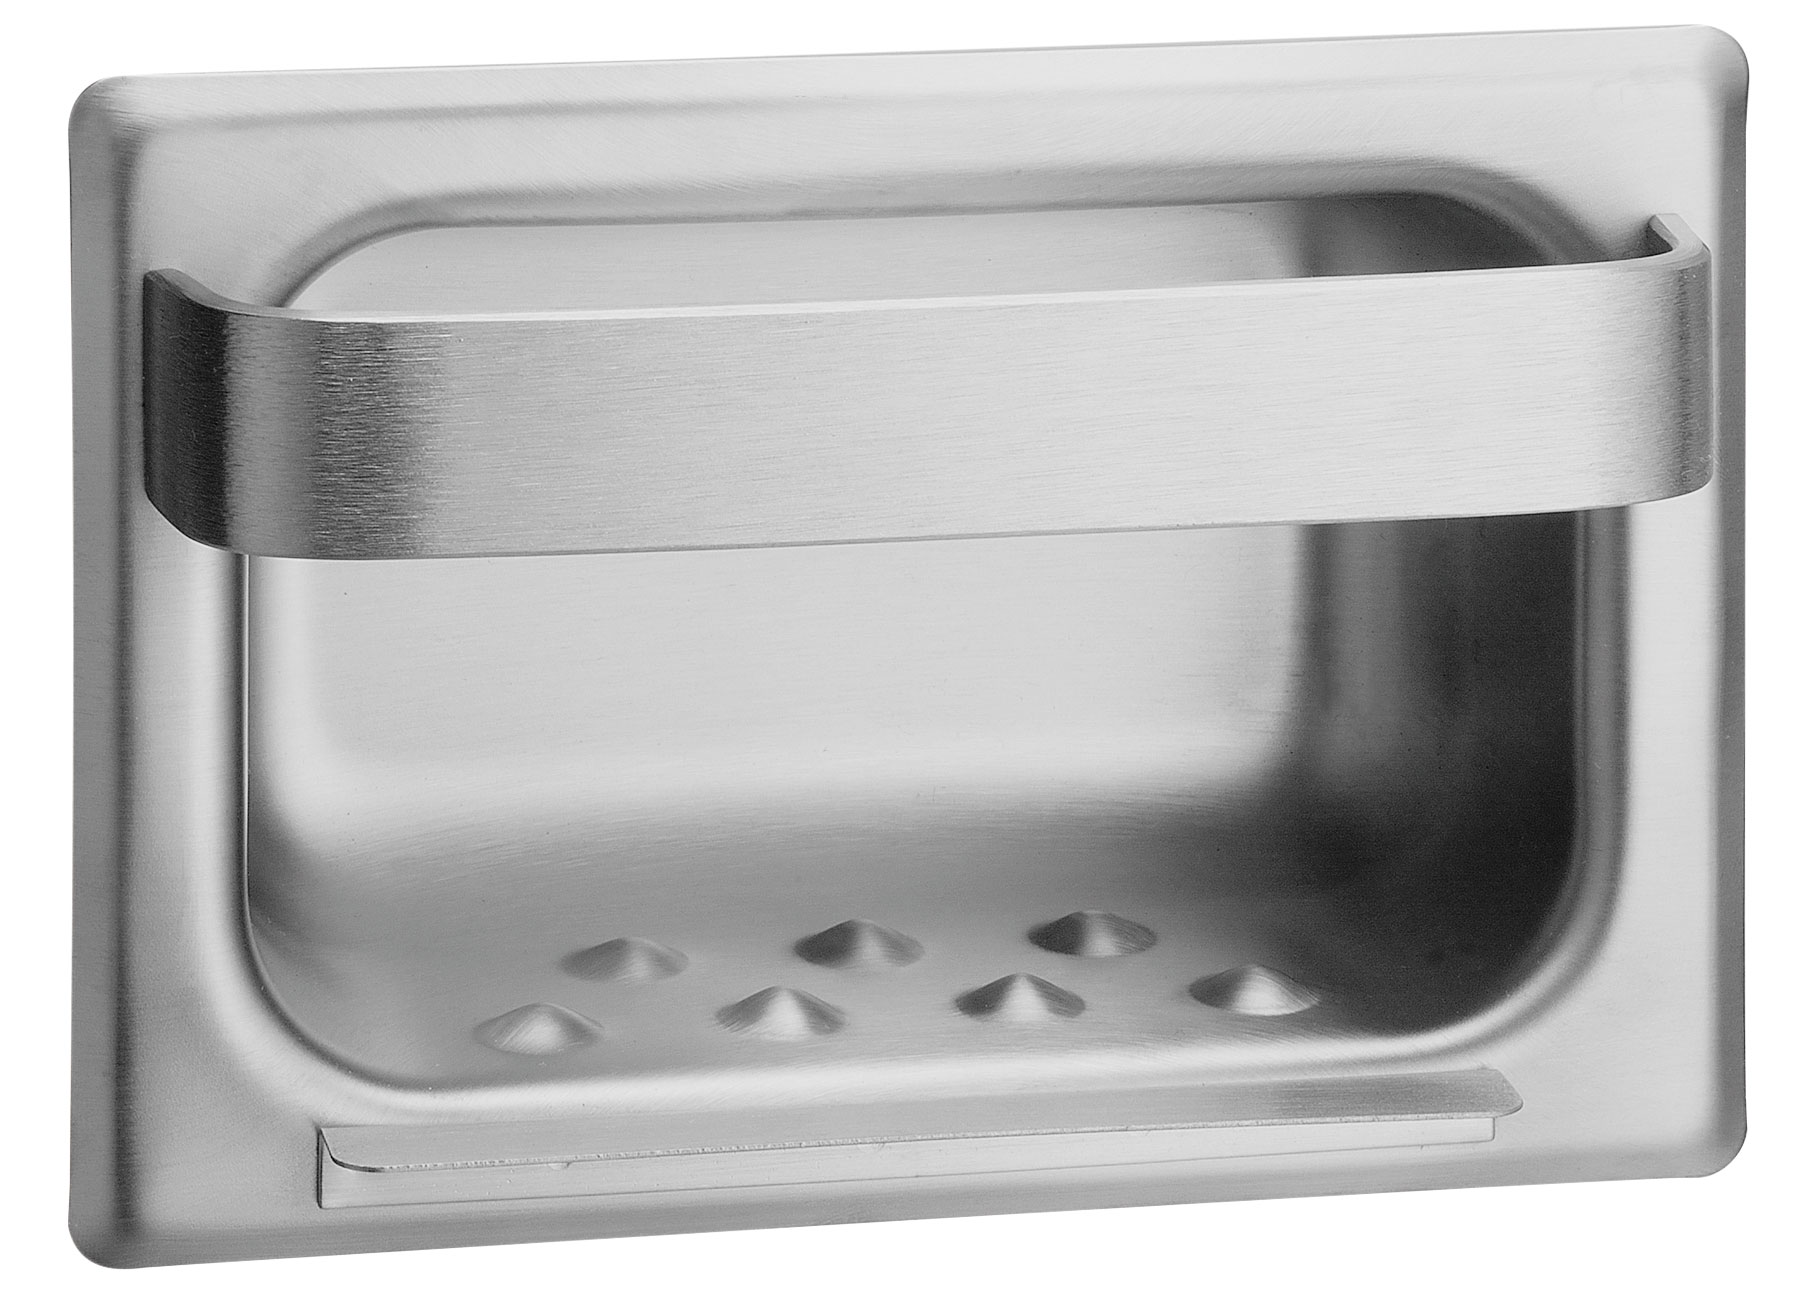 Stainless Steel Masonry Mount Soap Dish Towel Bar